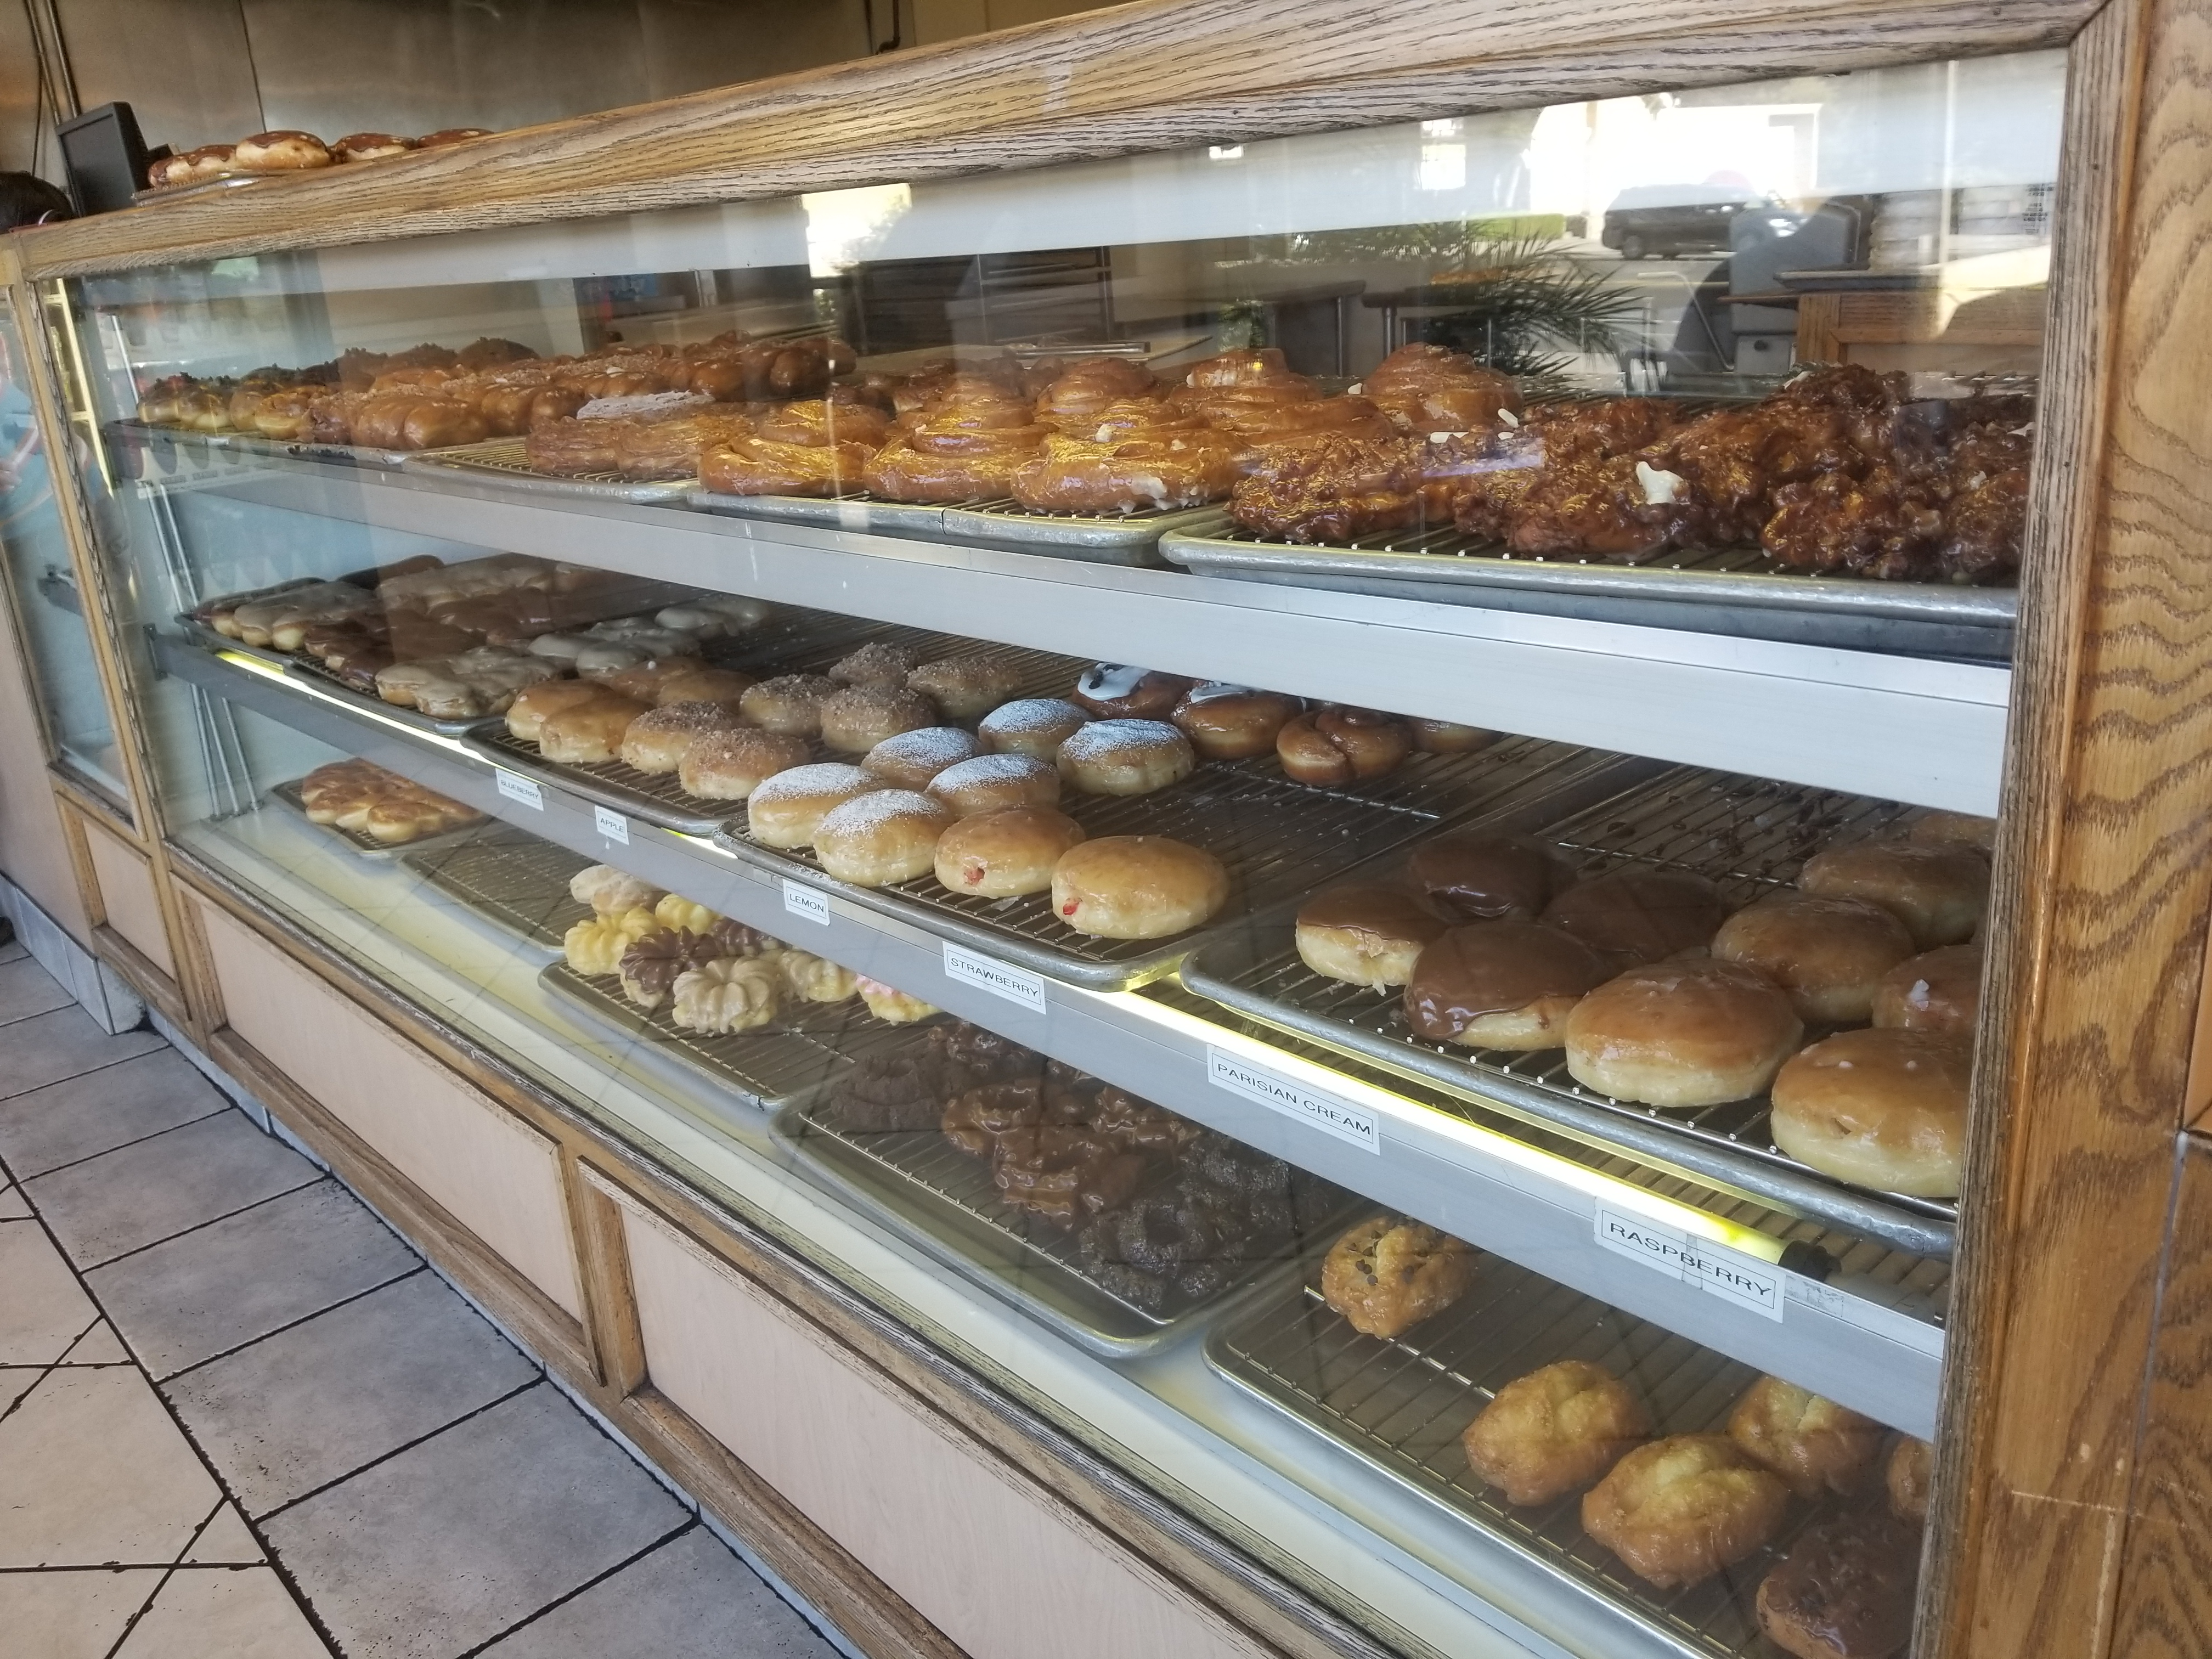 Donuts at Foster's Family Donuts